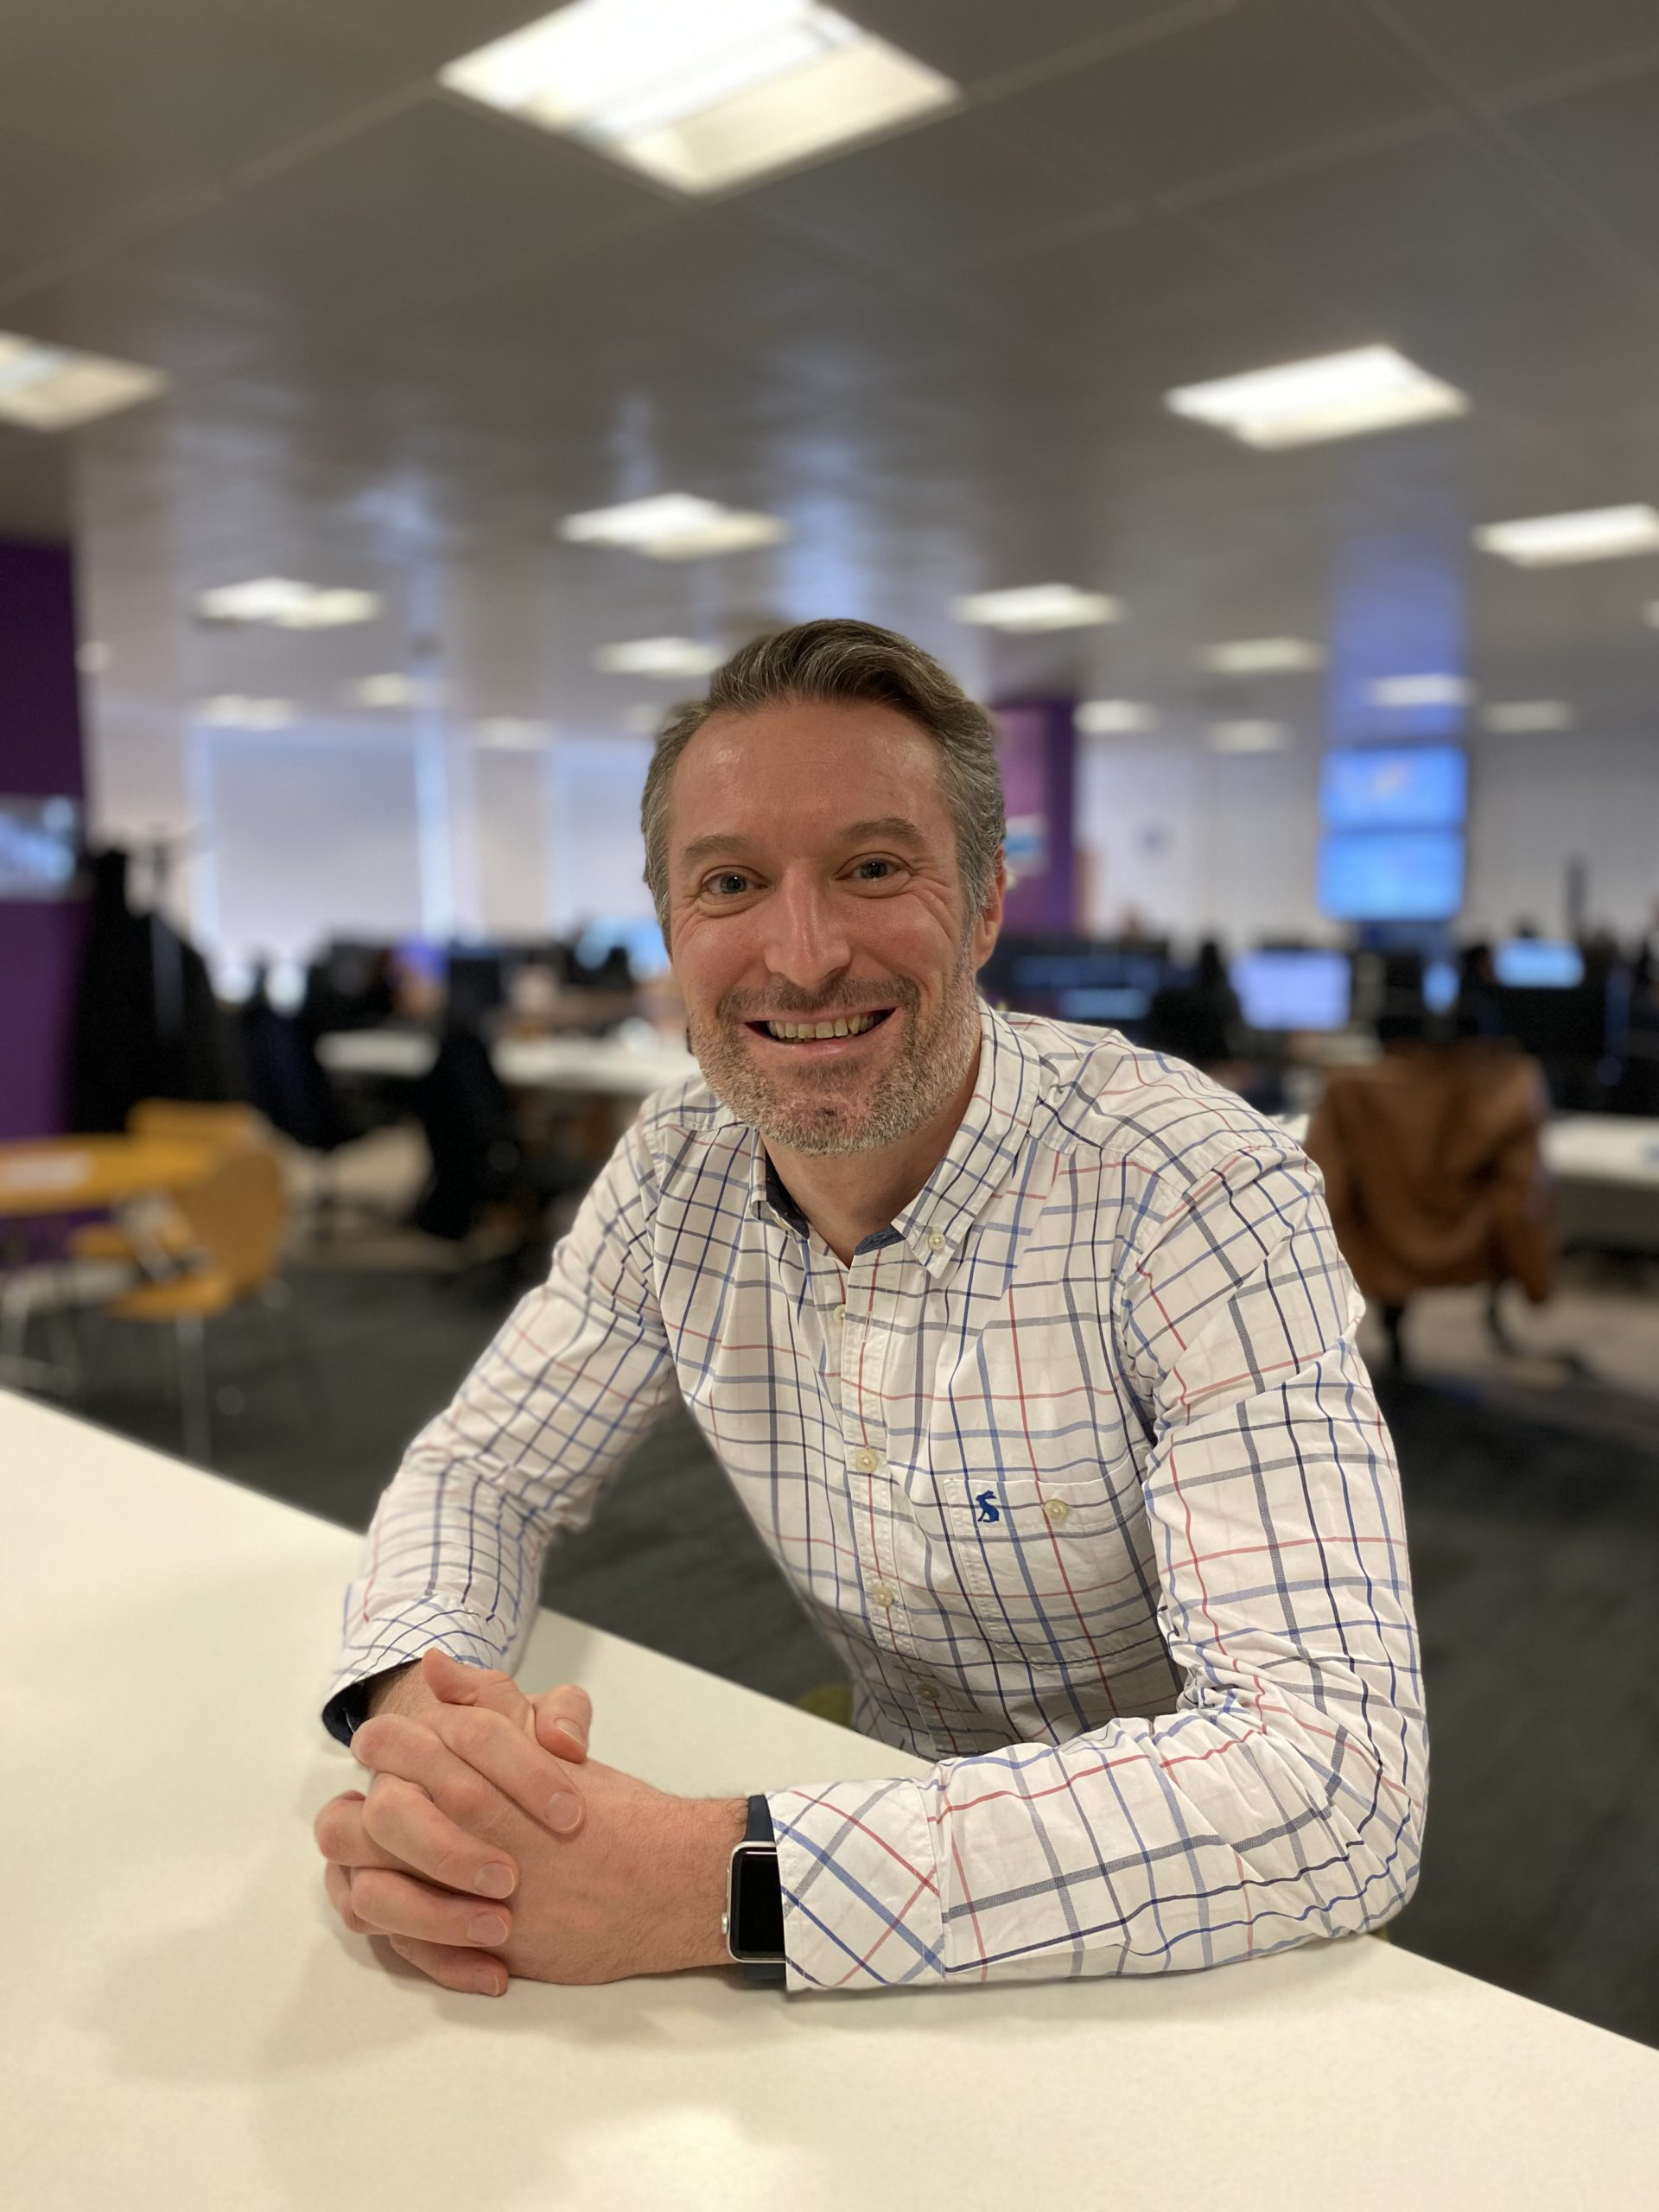 Image of Thomas Martin, Head of Procurement at Clear Channel